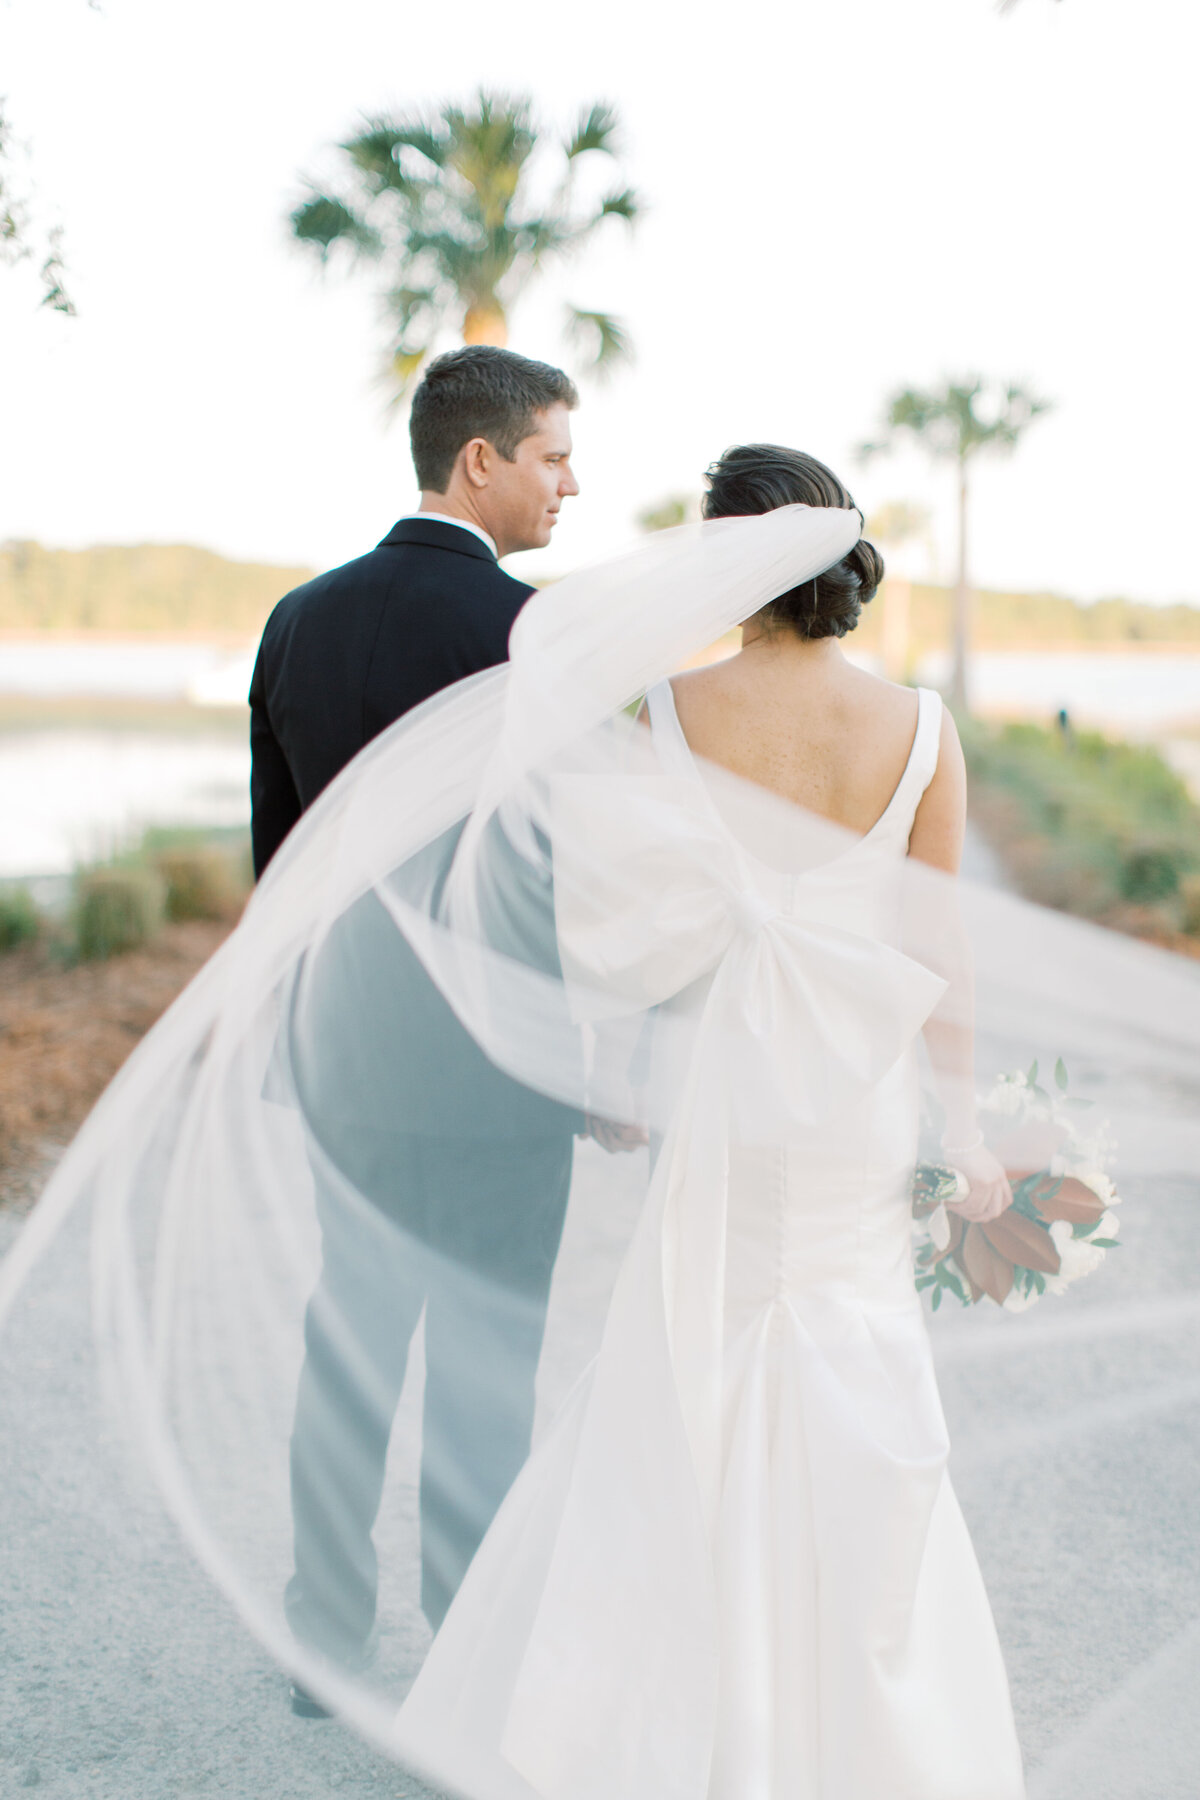 Powell_Oldfield_River_Club_Bluffton_South_Carolina_Beaufort_Savannah_Wedding_Jacksonville_Florida_Devon_Donnahoo_Photography_0912